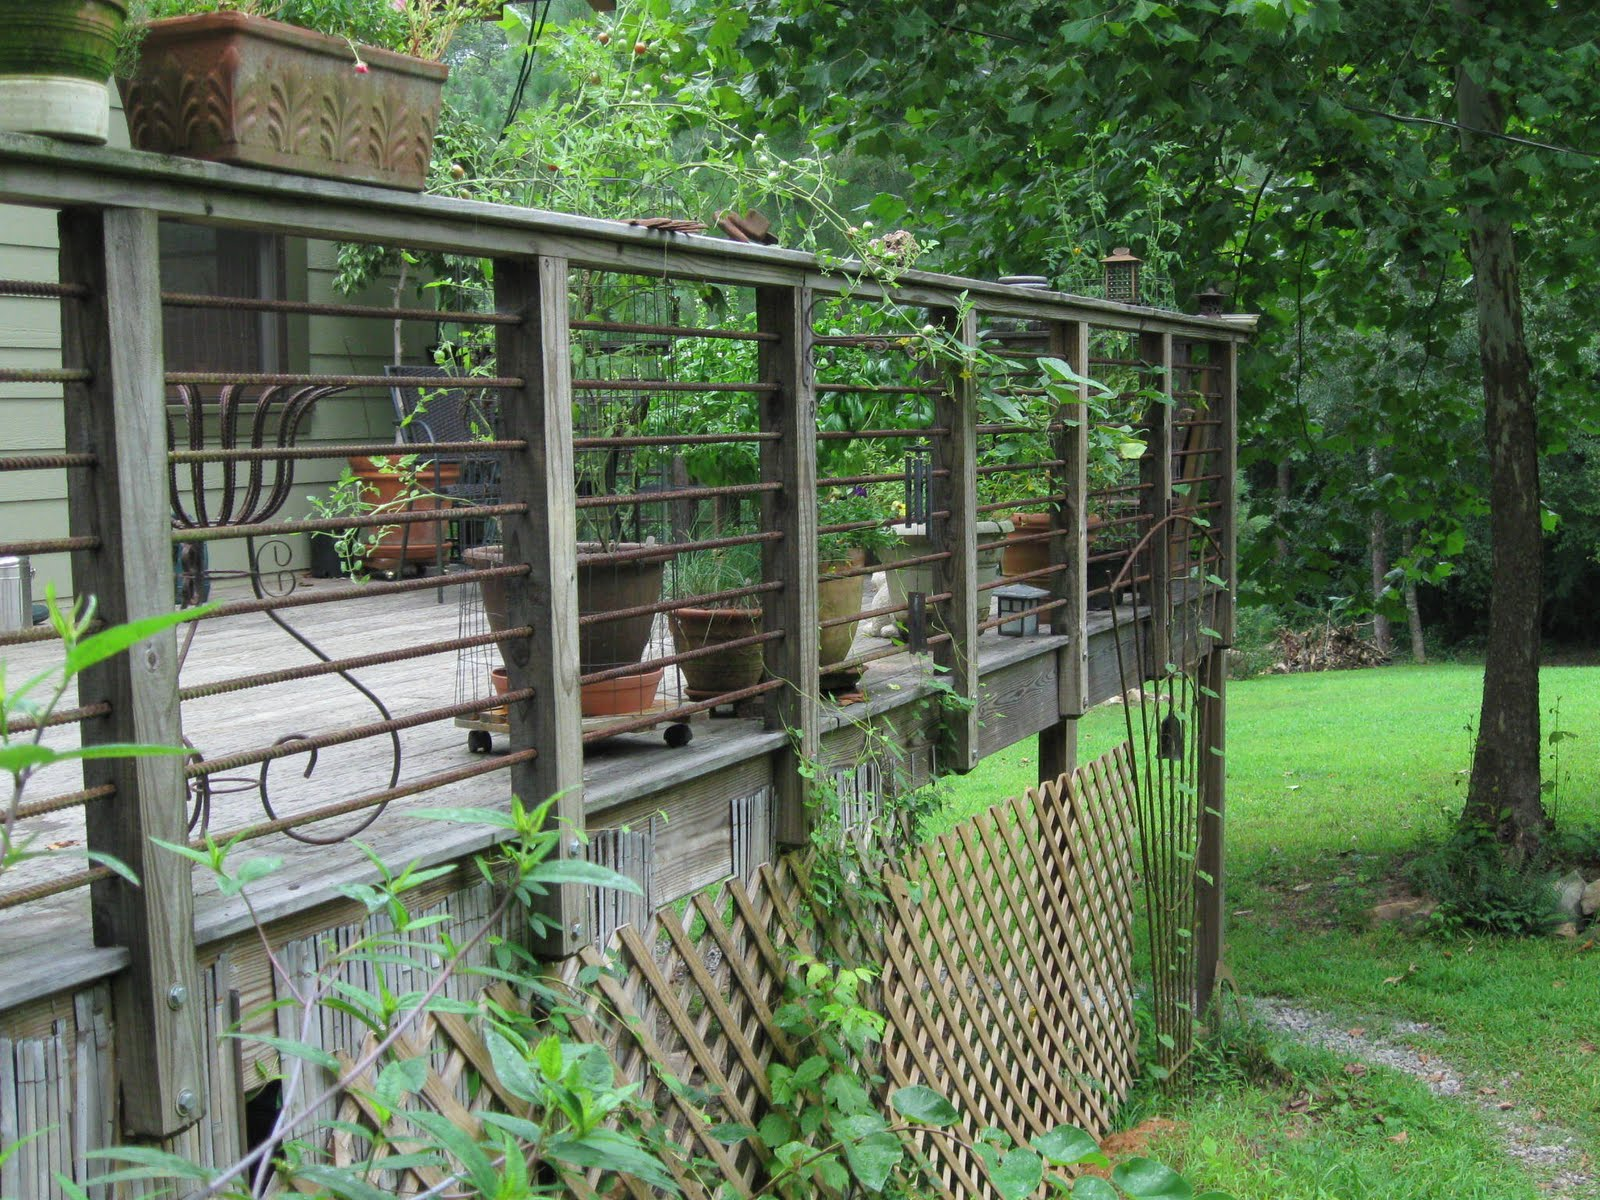 A Reader Asked Me To Show Few Pics Of The Rebar Handrail I Did For Deck And How It Had Aged